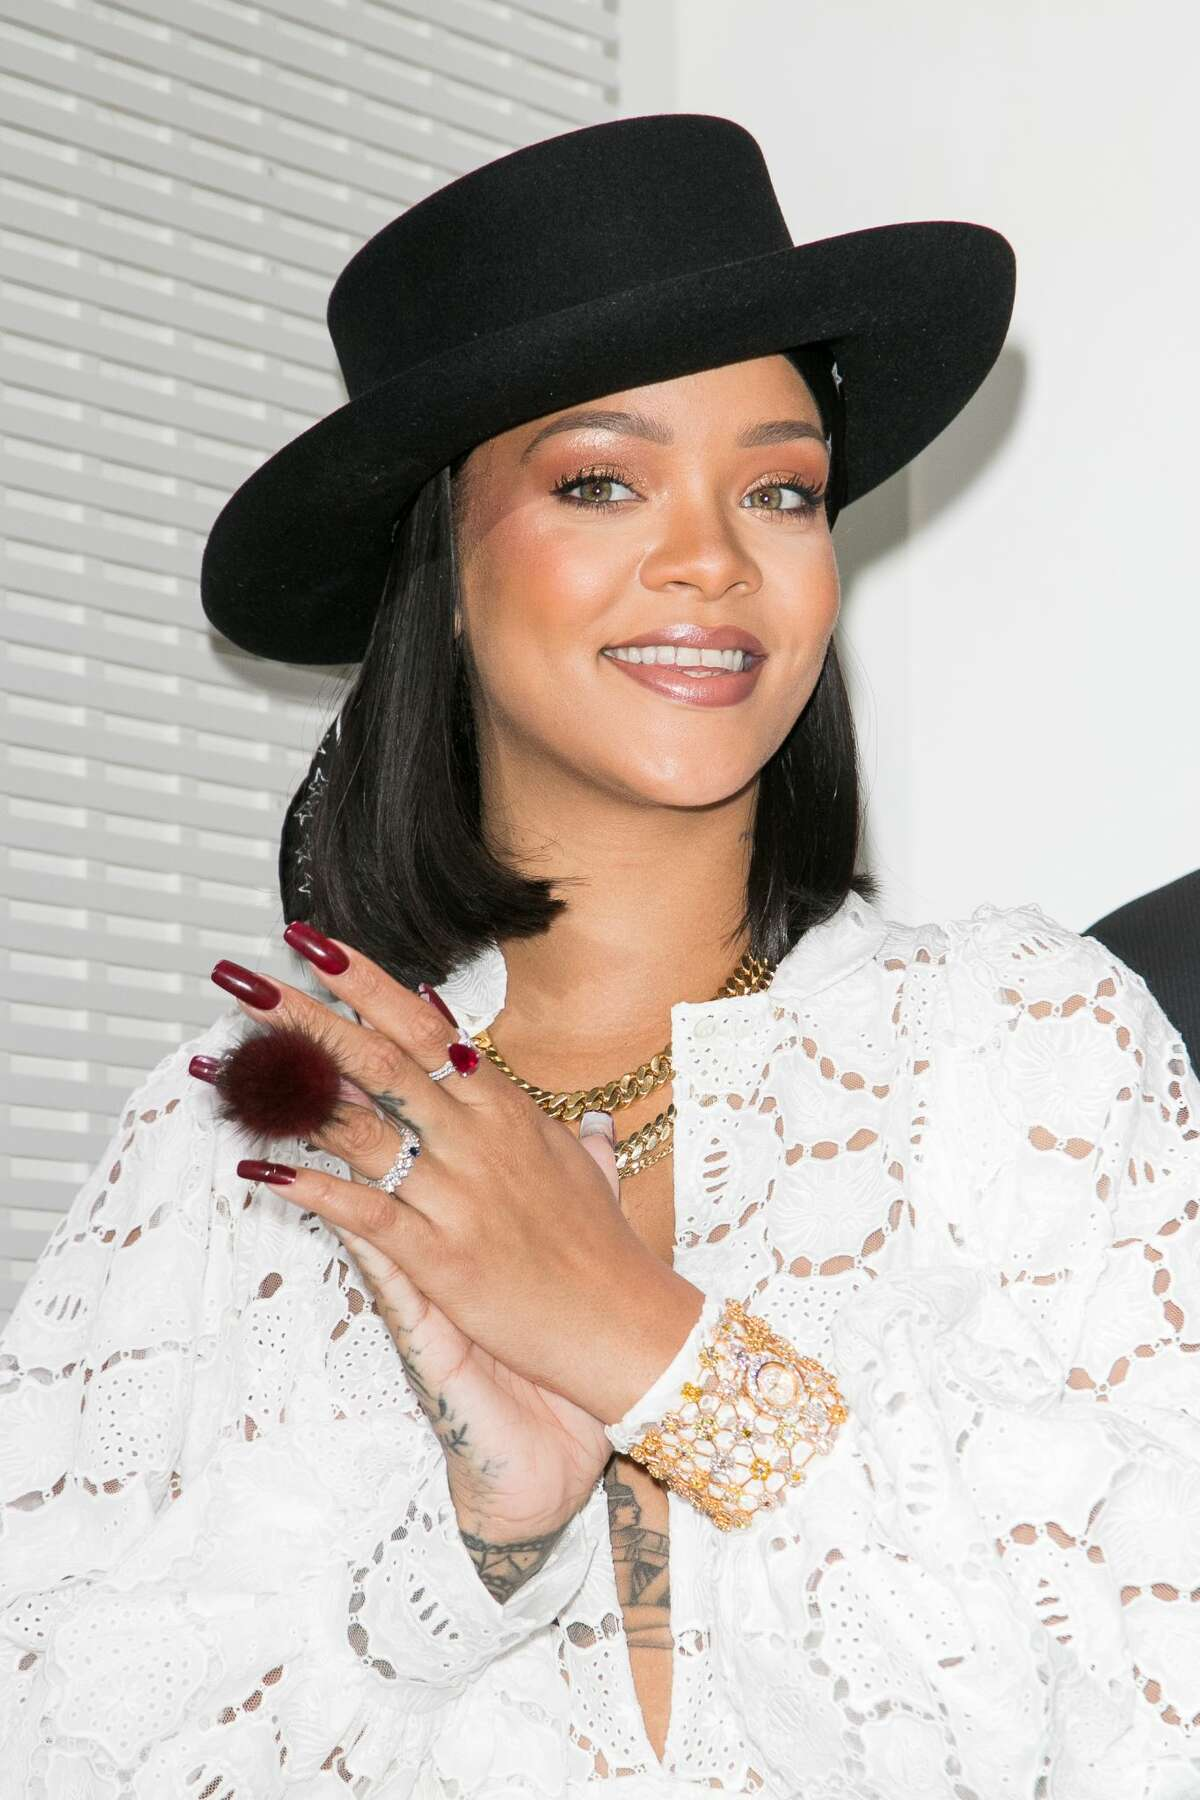 Rihanna's relationship with a Saudi billionaire has surfaced thanks to some newly emerged photos... >>Keep clicking for a look at the couple together. Plus, the many different faces of Rihanna...